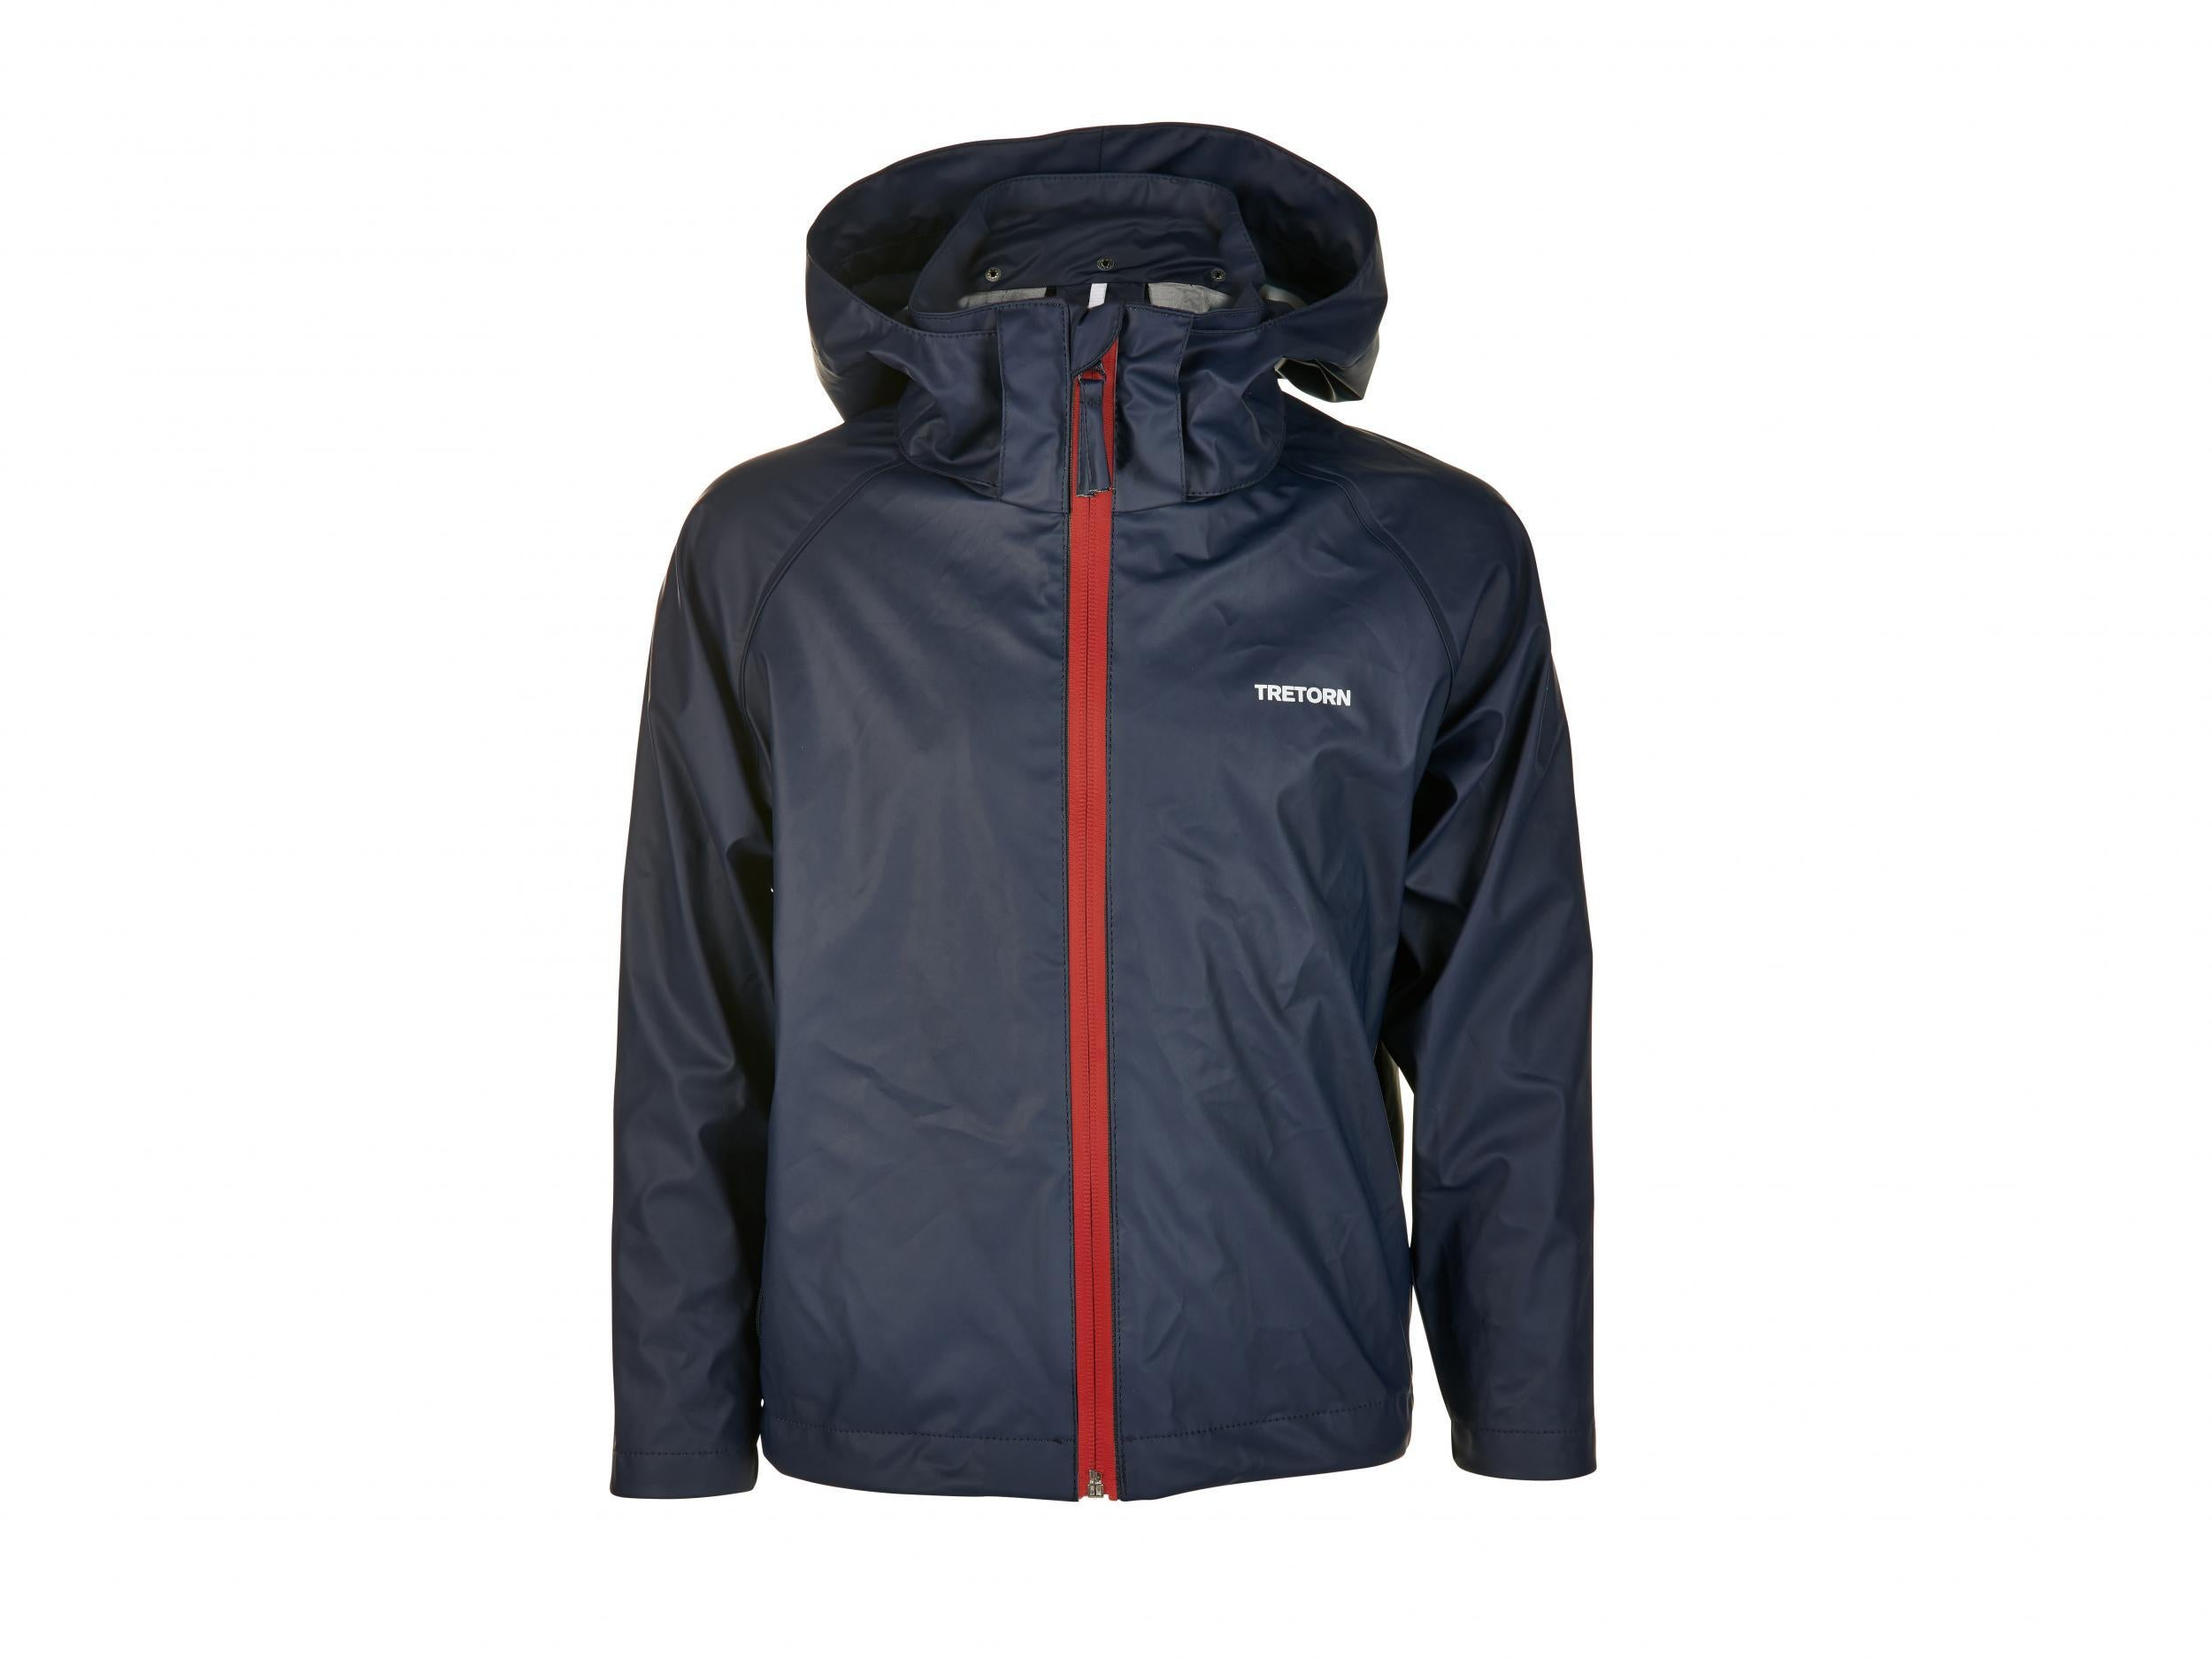 efaec2dd Best kids' raincoat: Waterproof jackets, pac-a-macs and coats to keep  children dry in showers and downpours